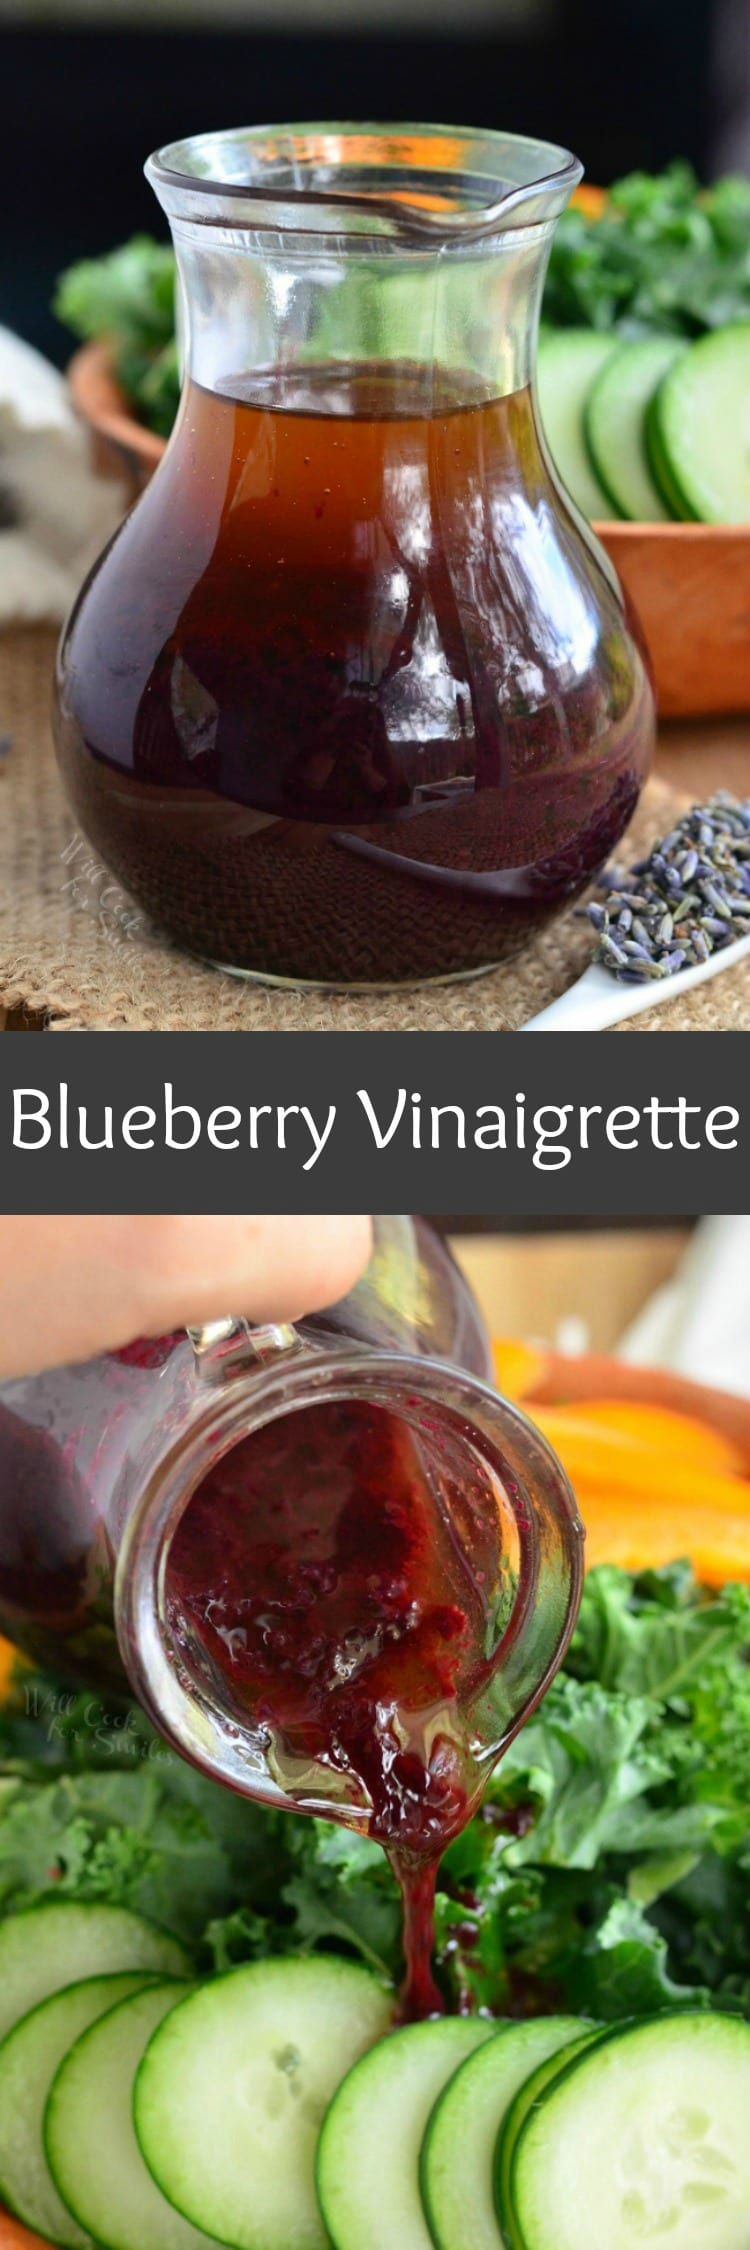 Blueberry Lavender Vinaigrette. Delicious, aromatic blueberry salad dressing with added lavender flavor to brighten even the most boring salad.